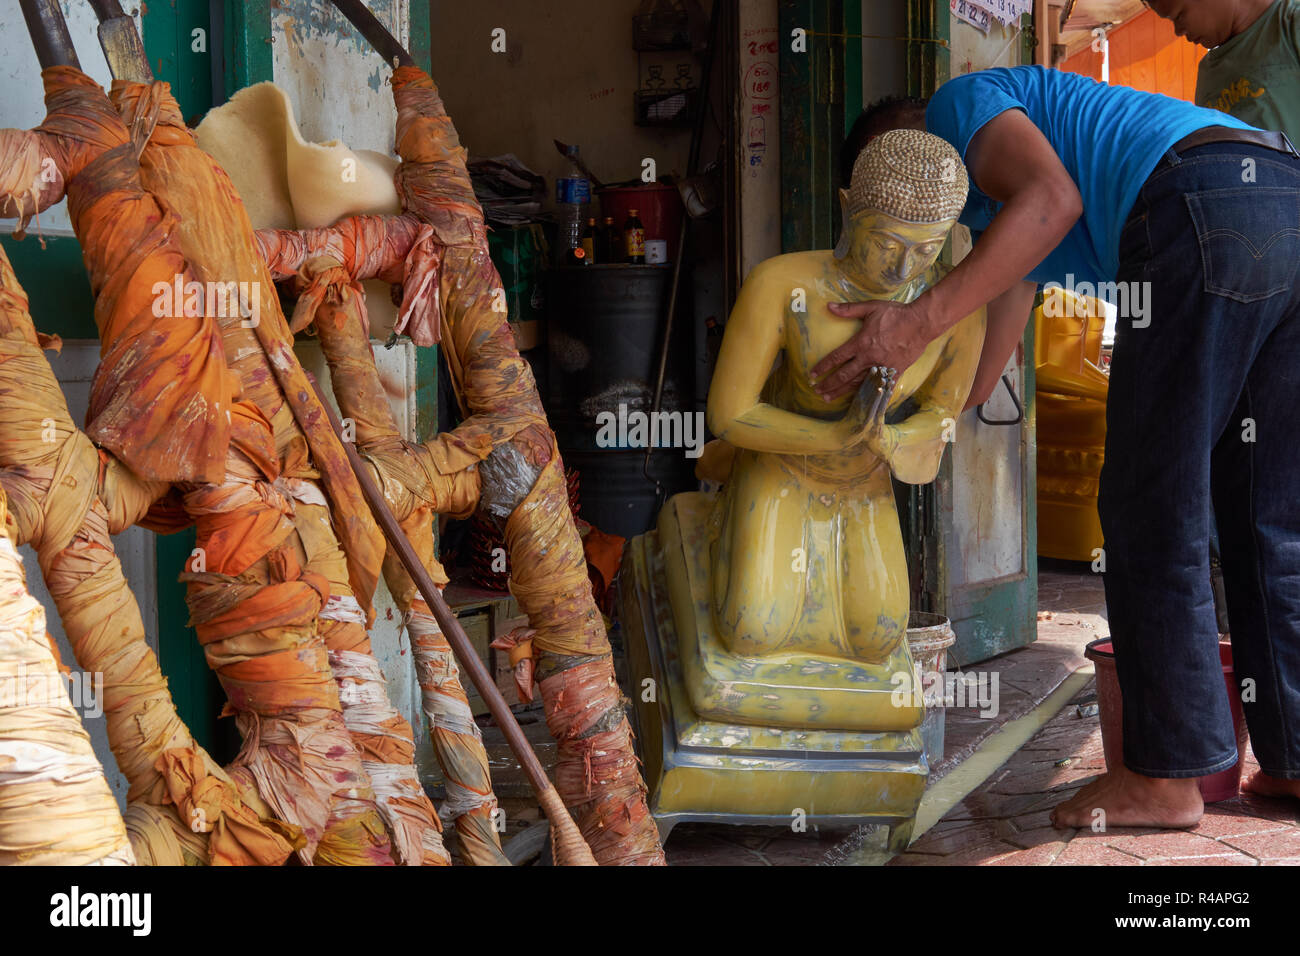 A workshop manufacturing Buddhist statues in Bamrung Muang Road, Bangkok, Thailand, a figure being readied for some final touches - Stock Image